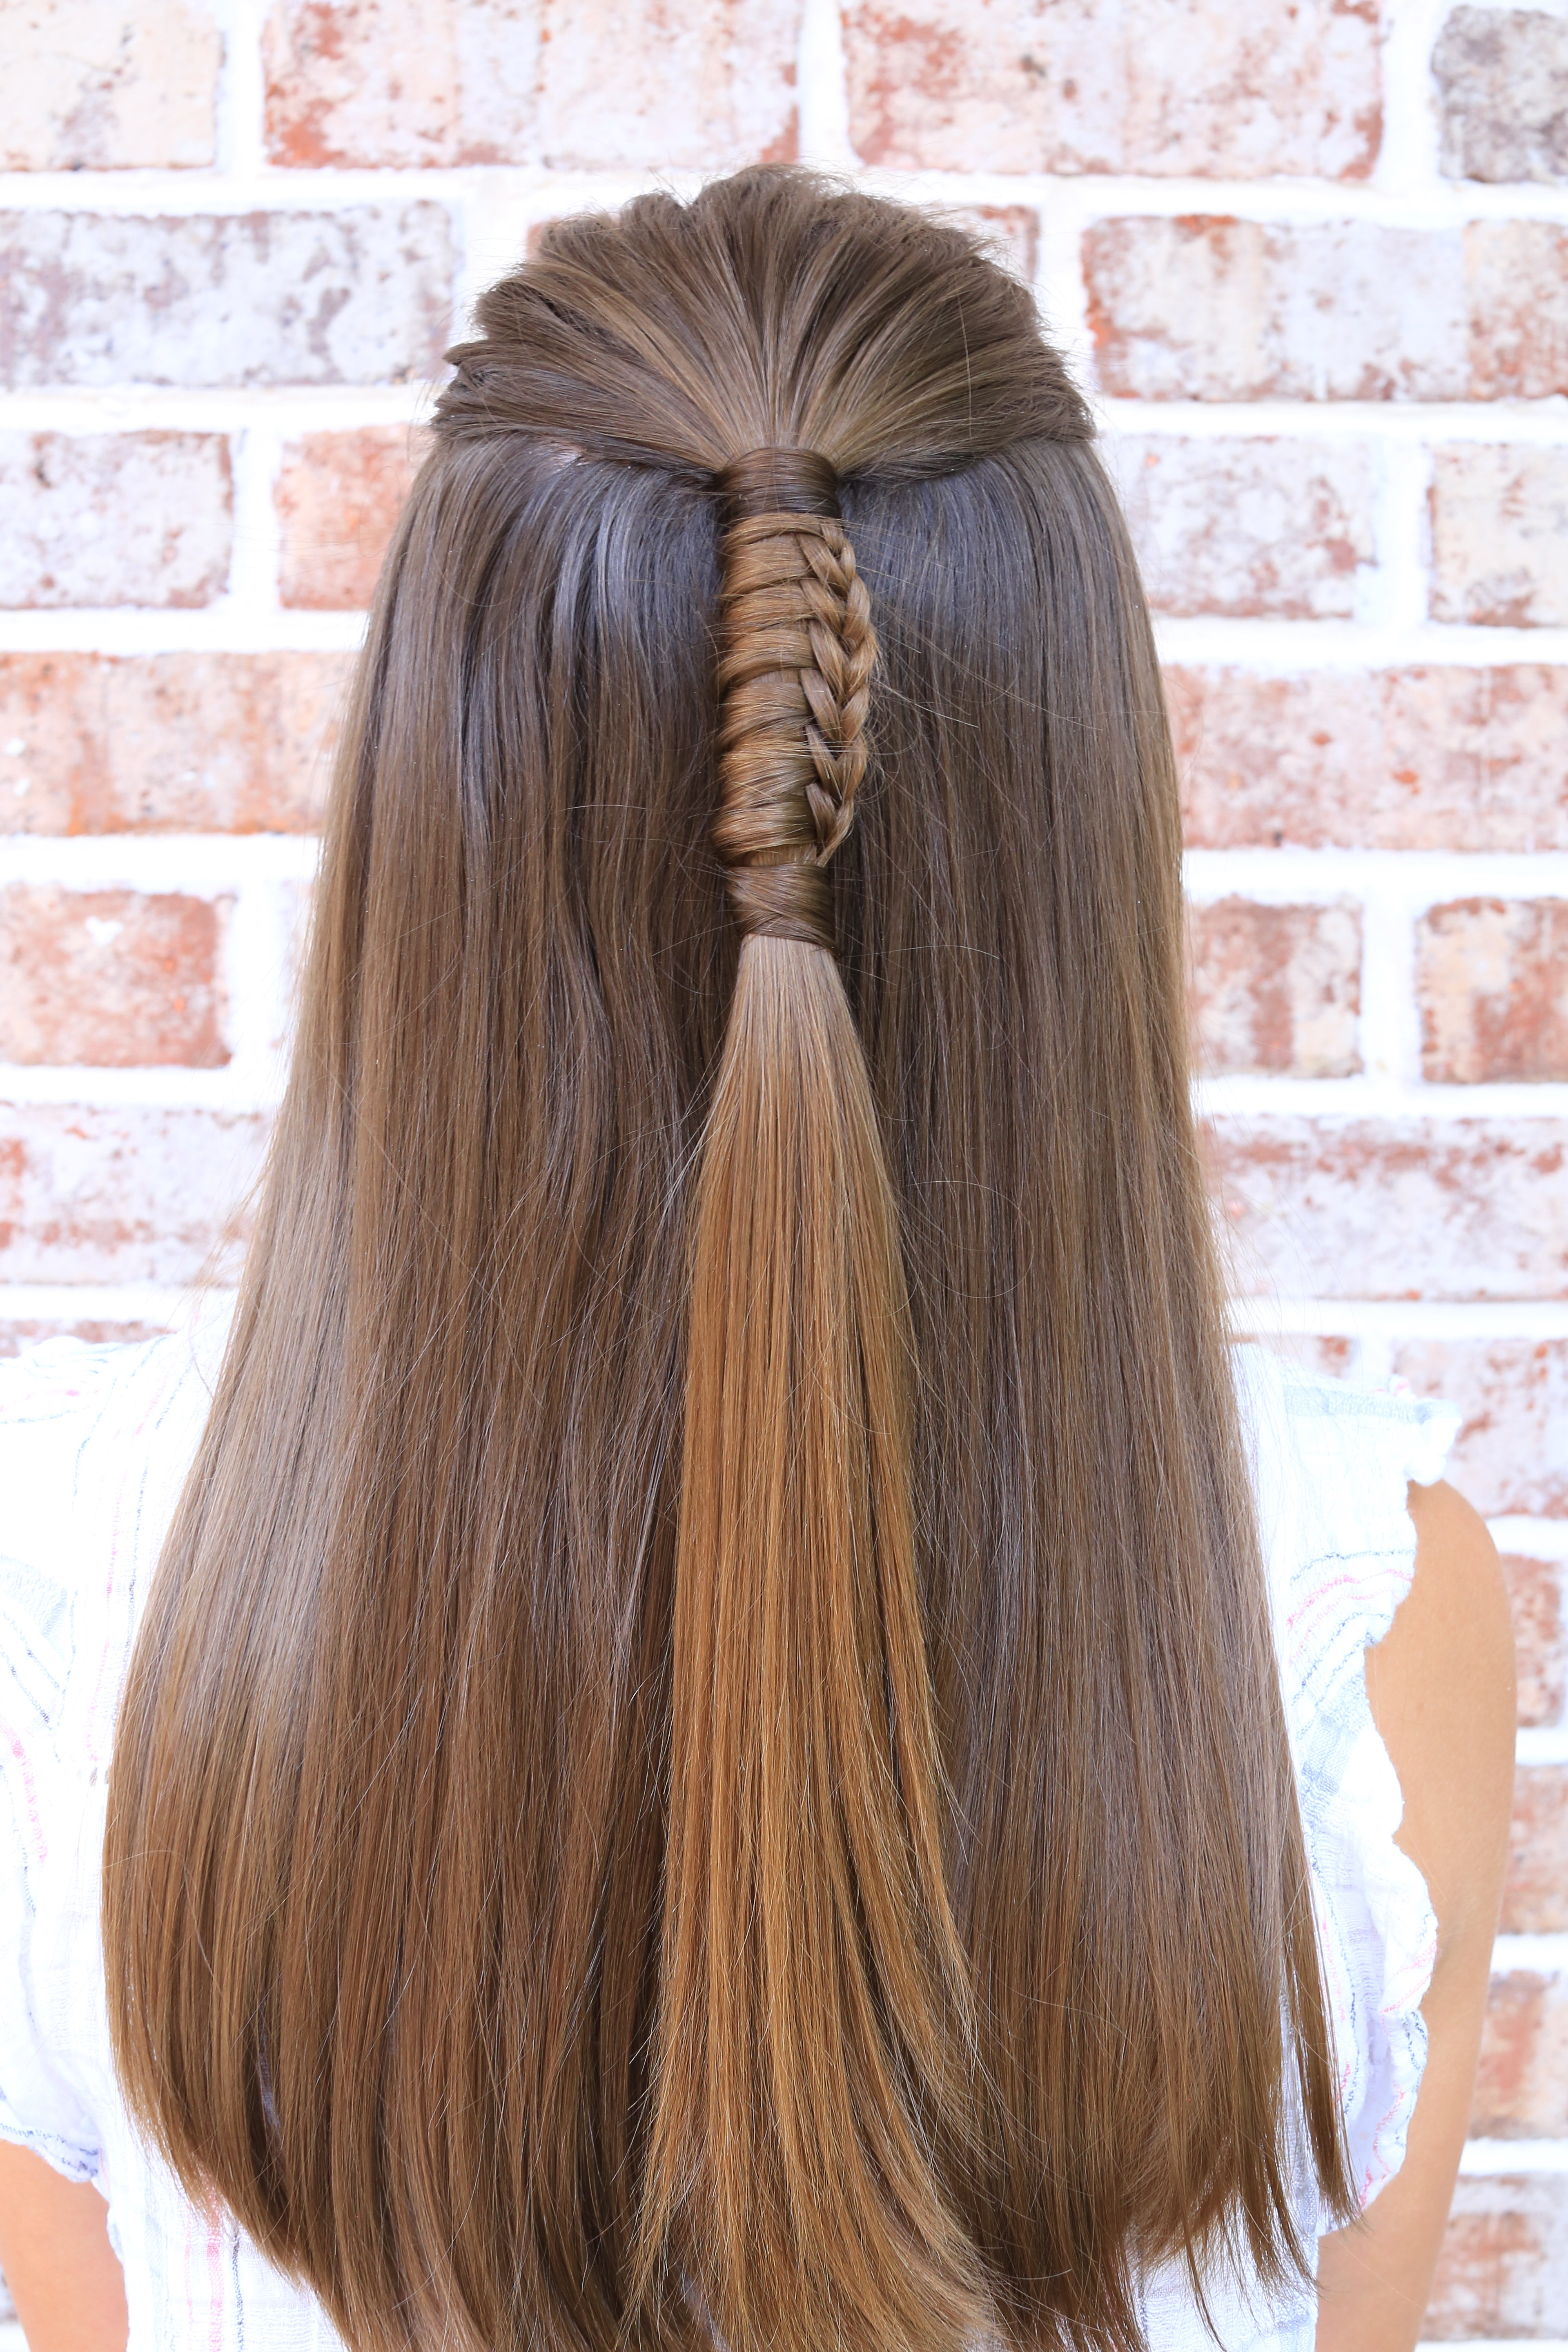 Best ideas about Easy Hairstyle Video . Save or Pin 5 Easy Hairstyles for Back to School Now.